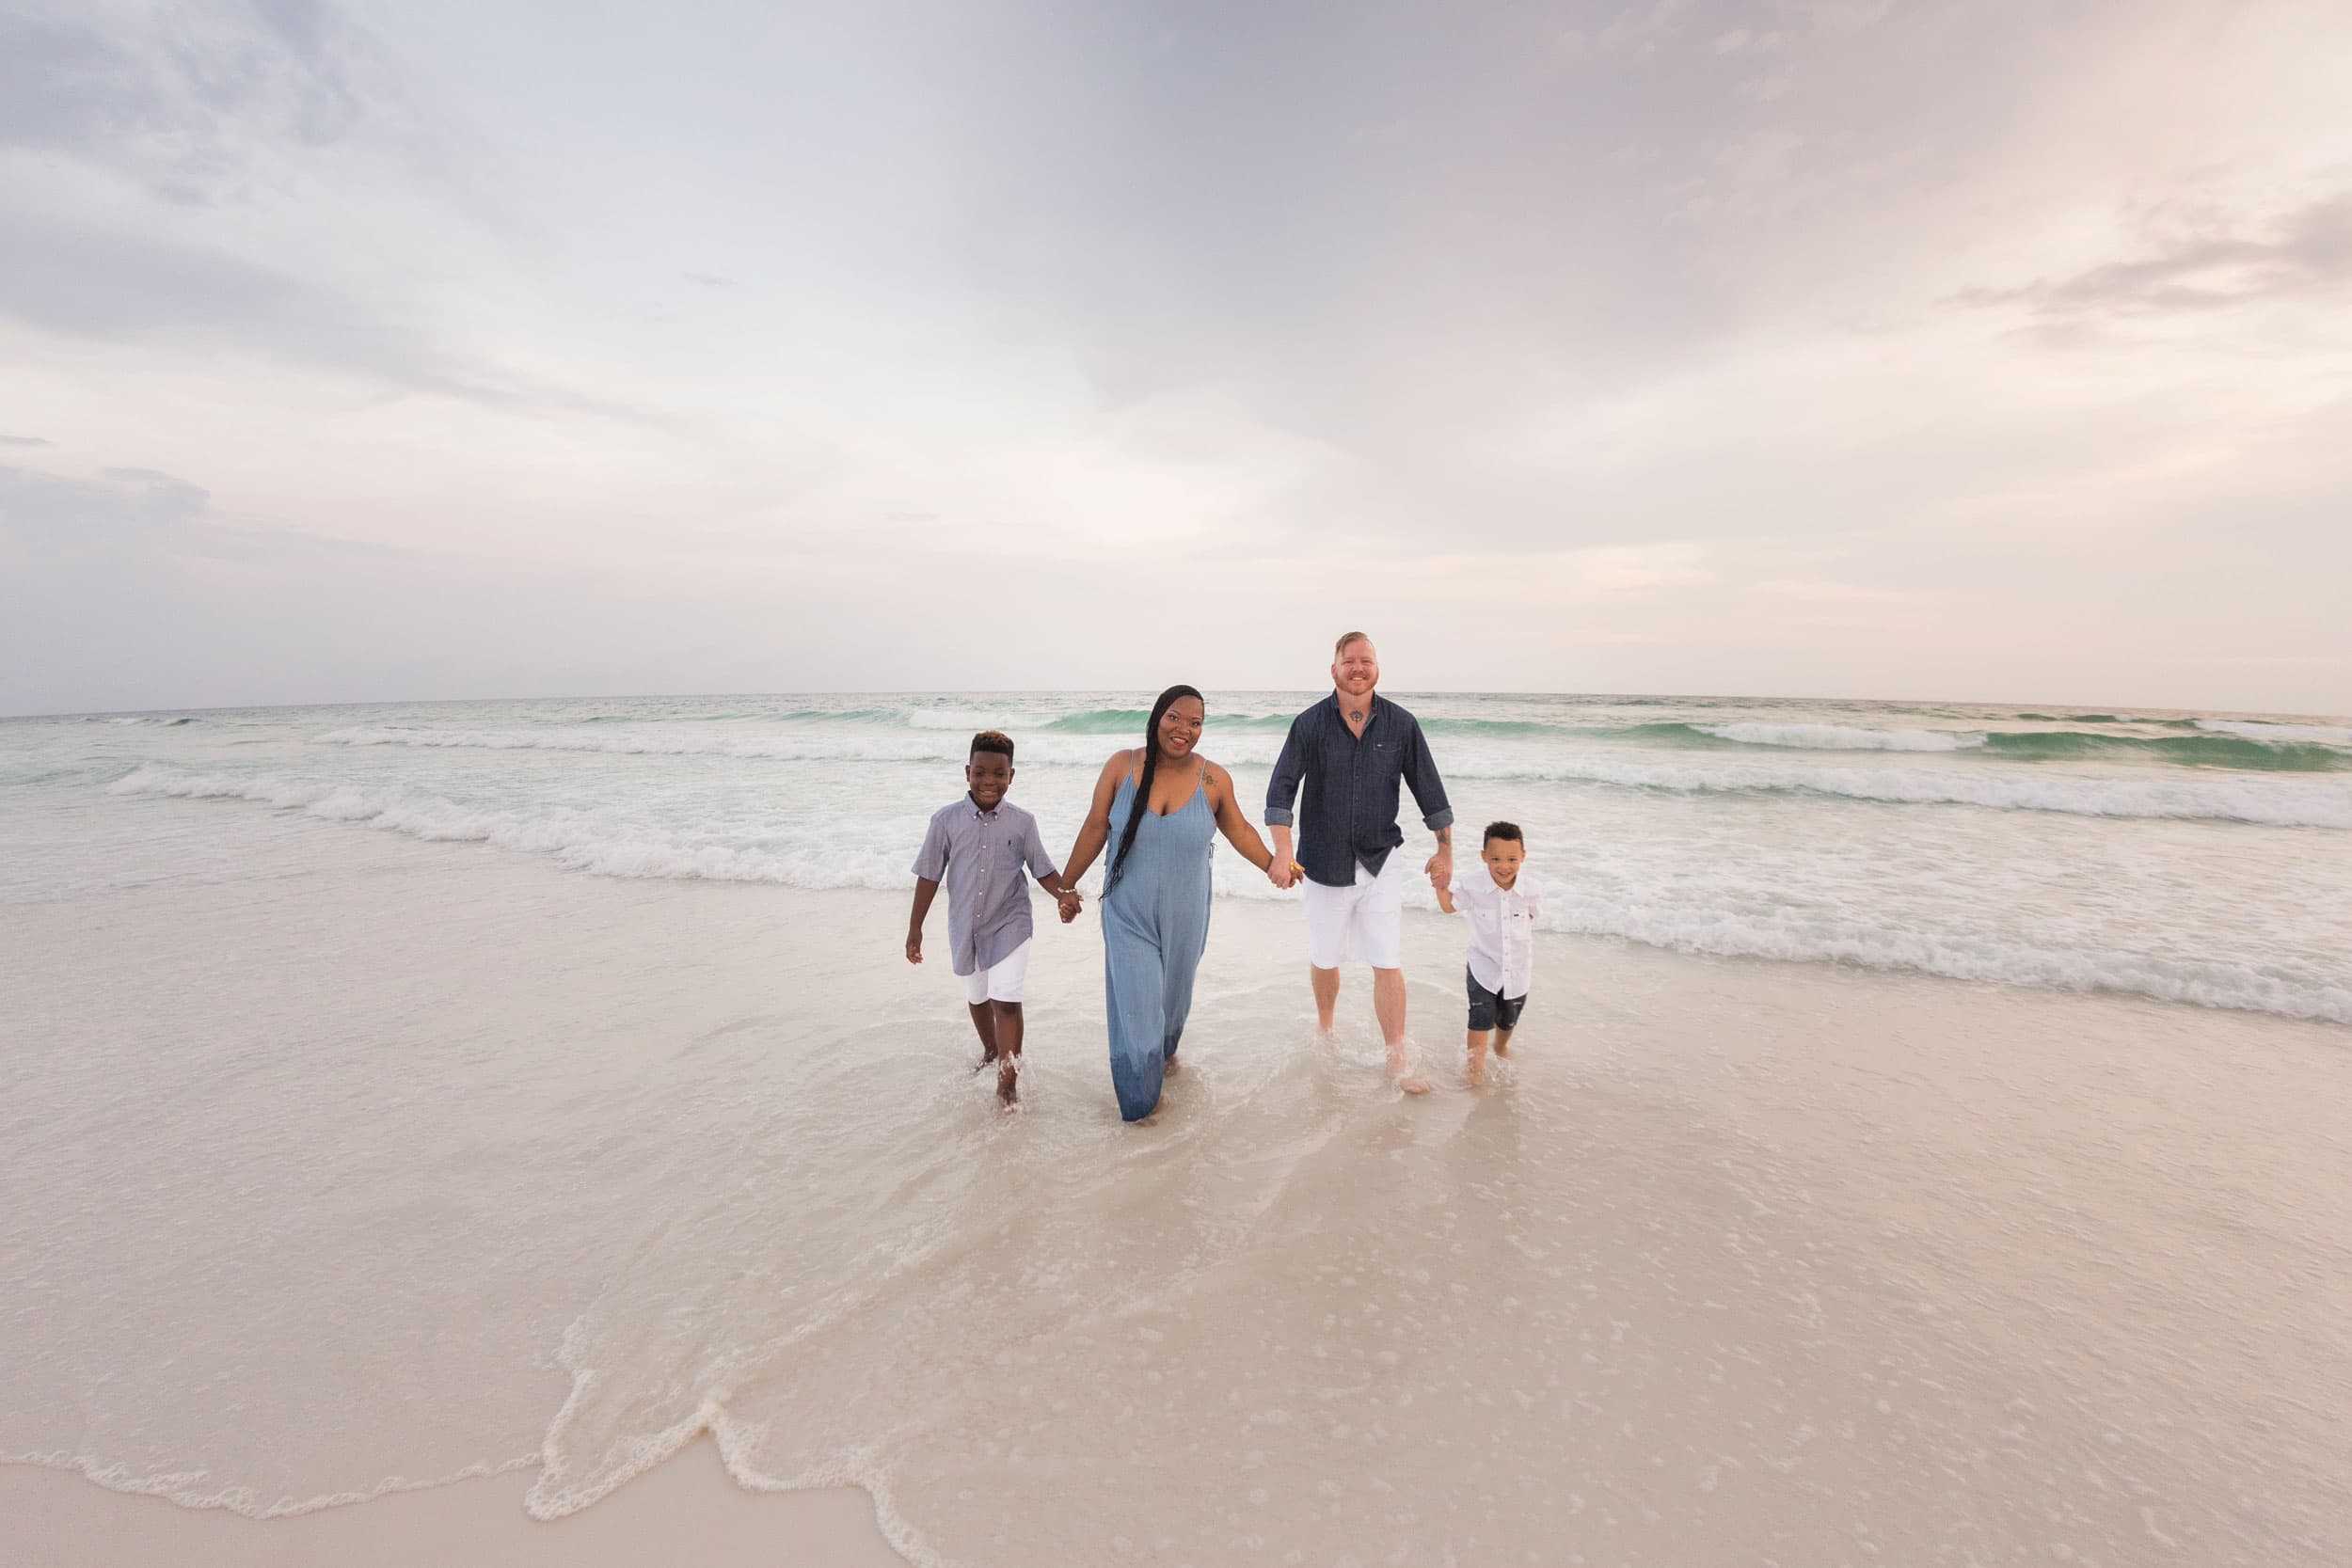 Vacationing parents and children walk during beach session